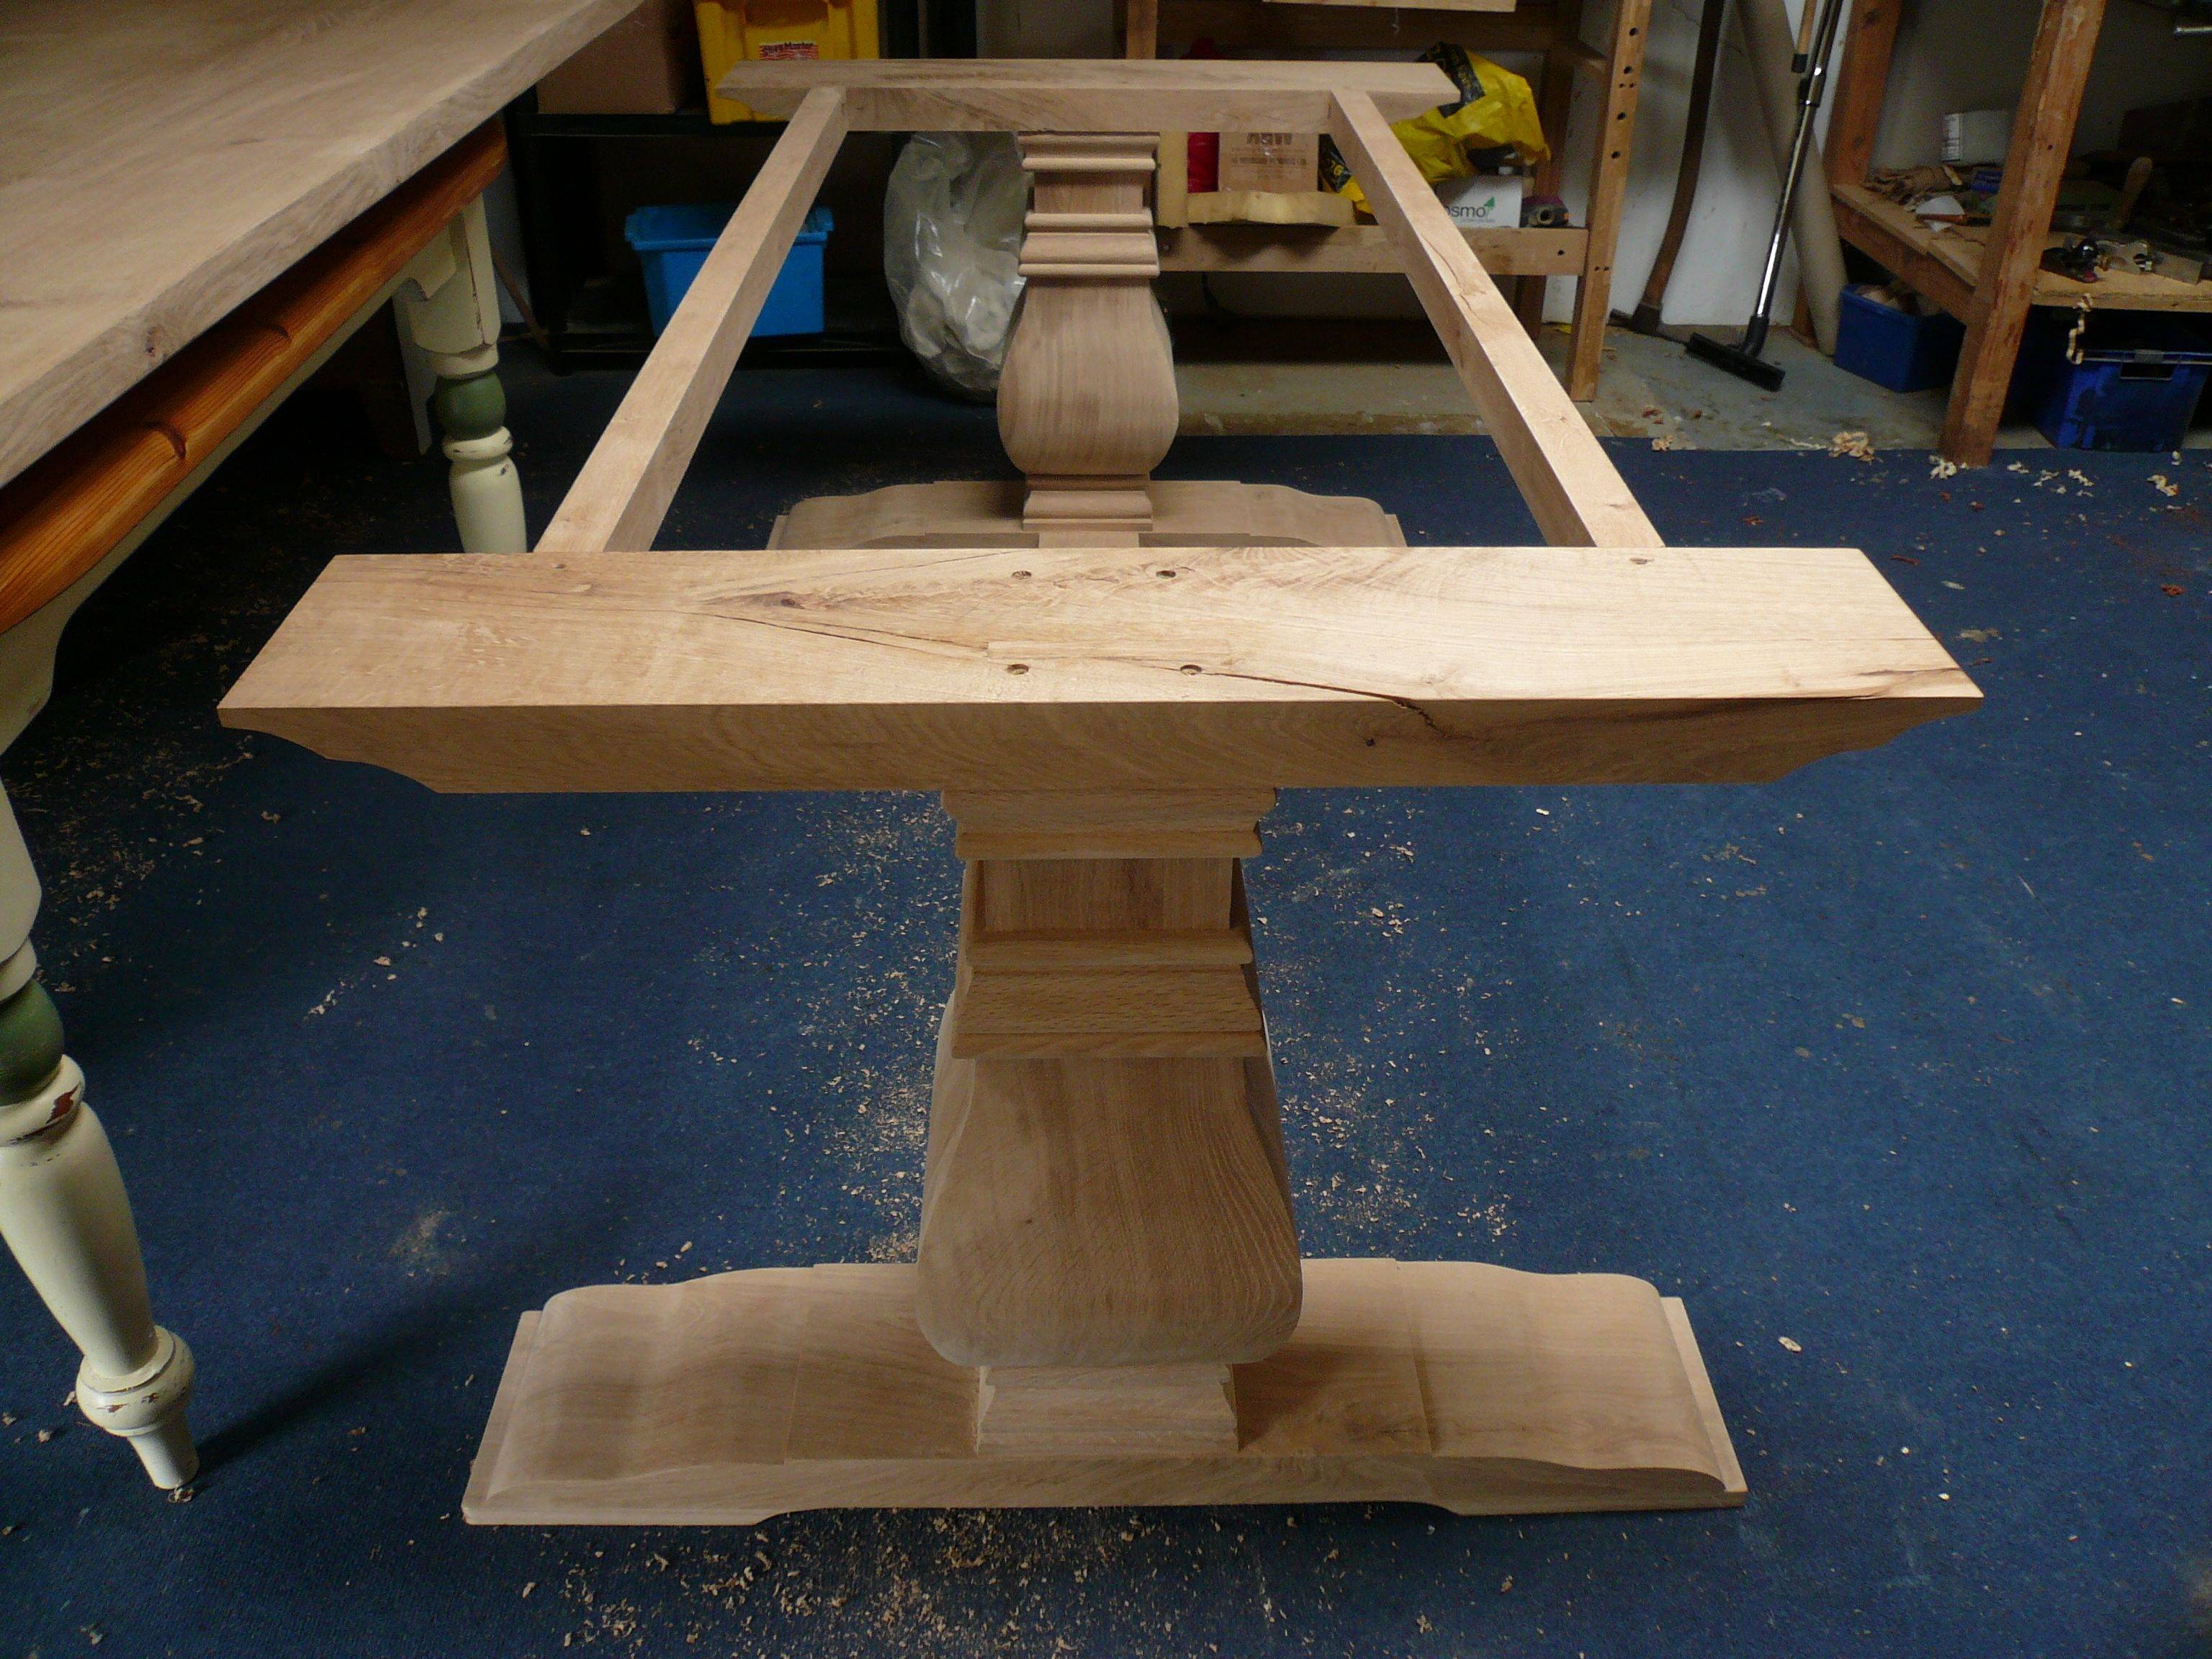 Hand Turned Table Legs | Bespoke Handmade Table In Solid Oak With Bulbous  Legs